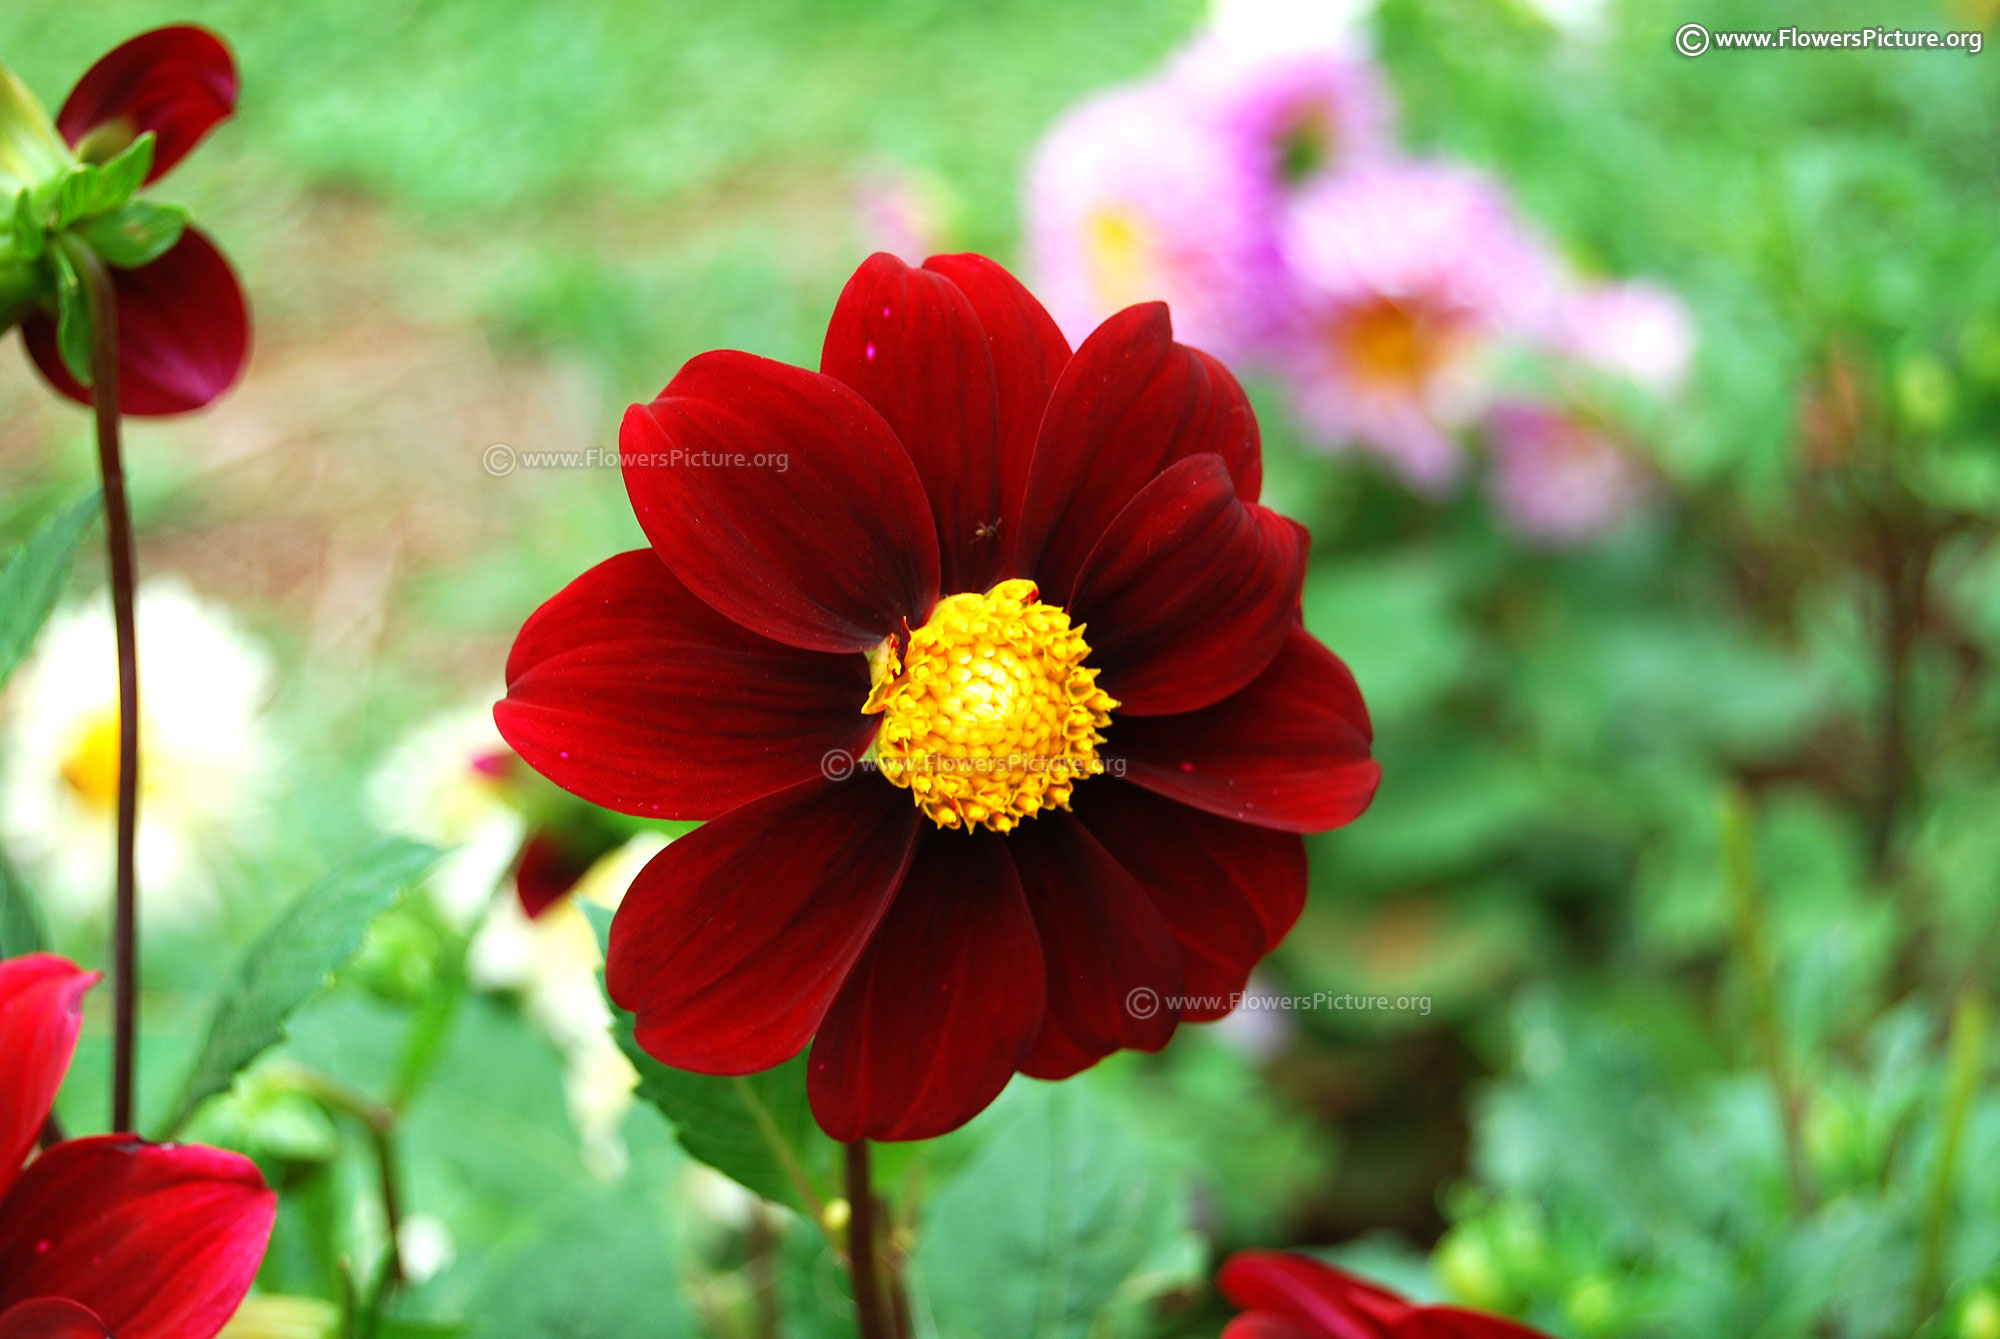 Red and Black Flowers | Red flower pictures and names